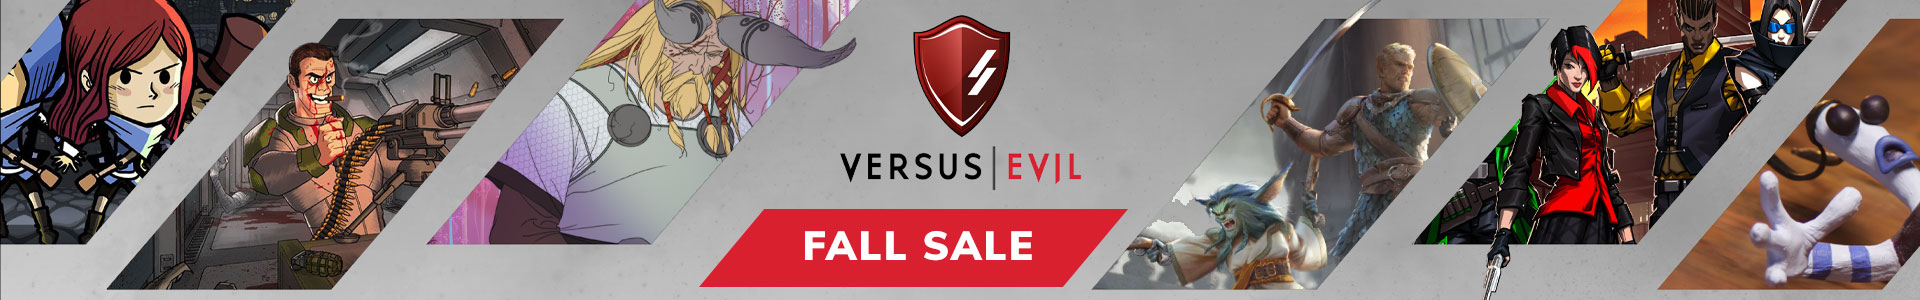 Versus Evil Fall Sale 2018